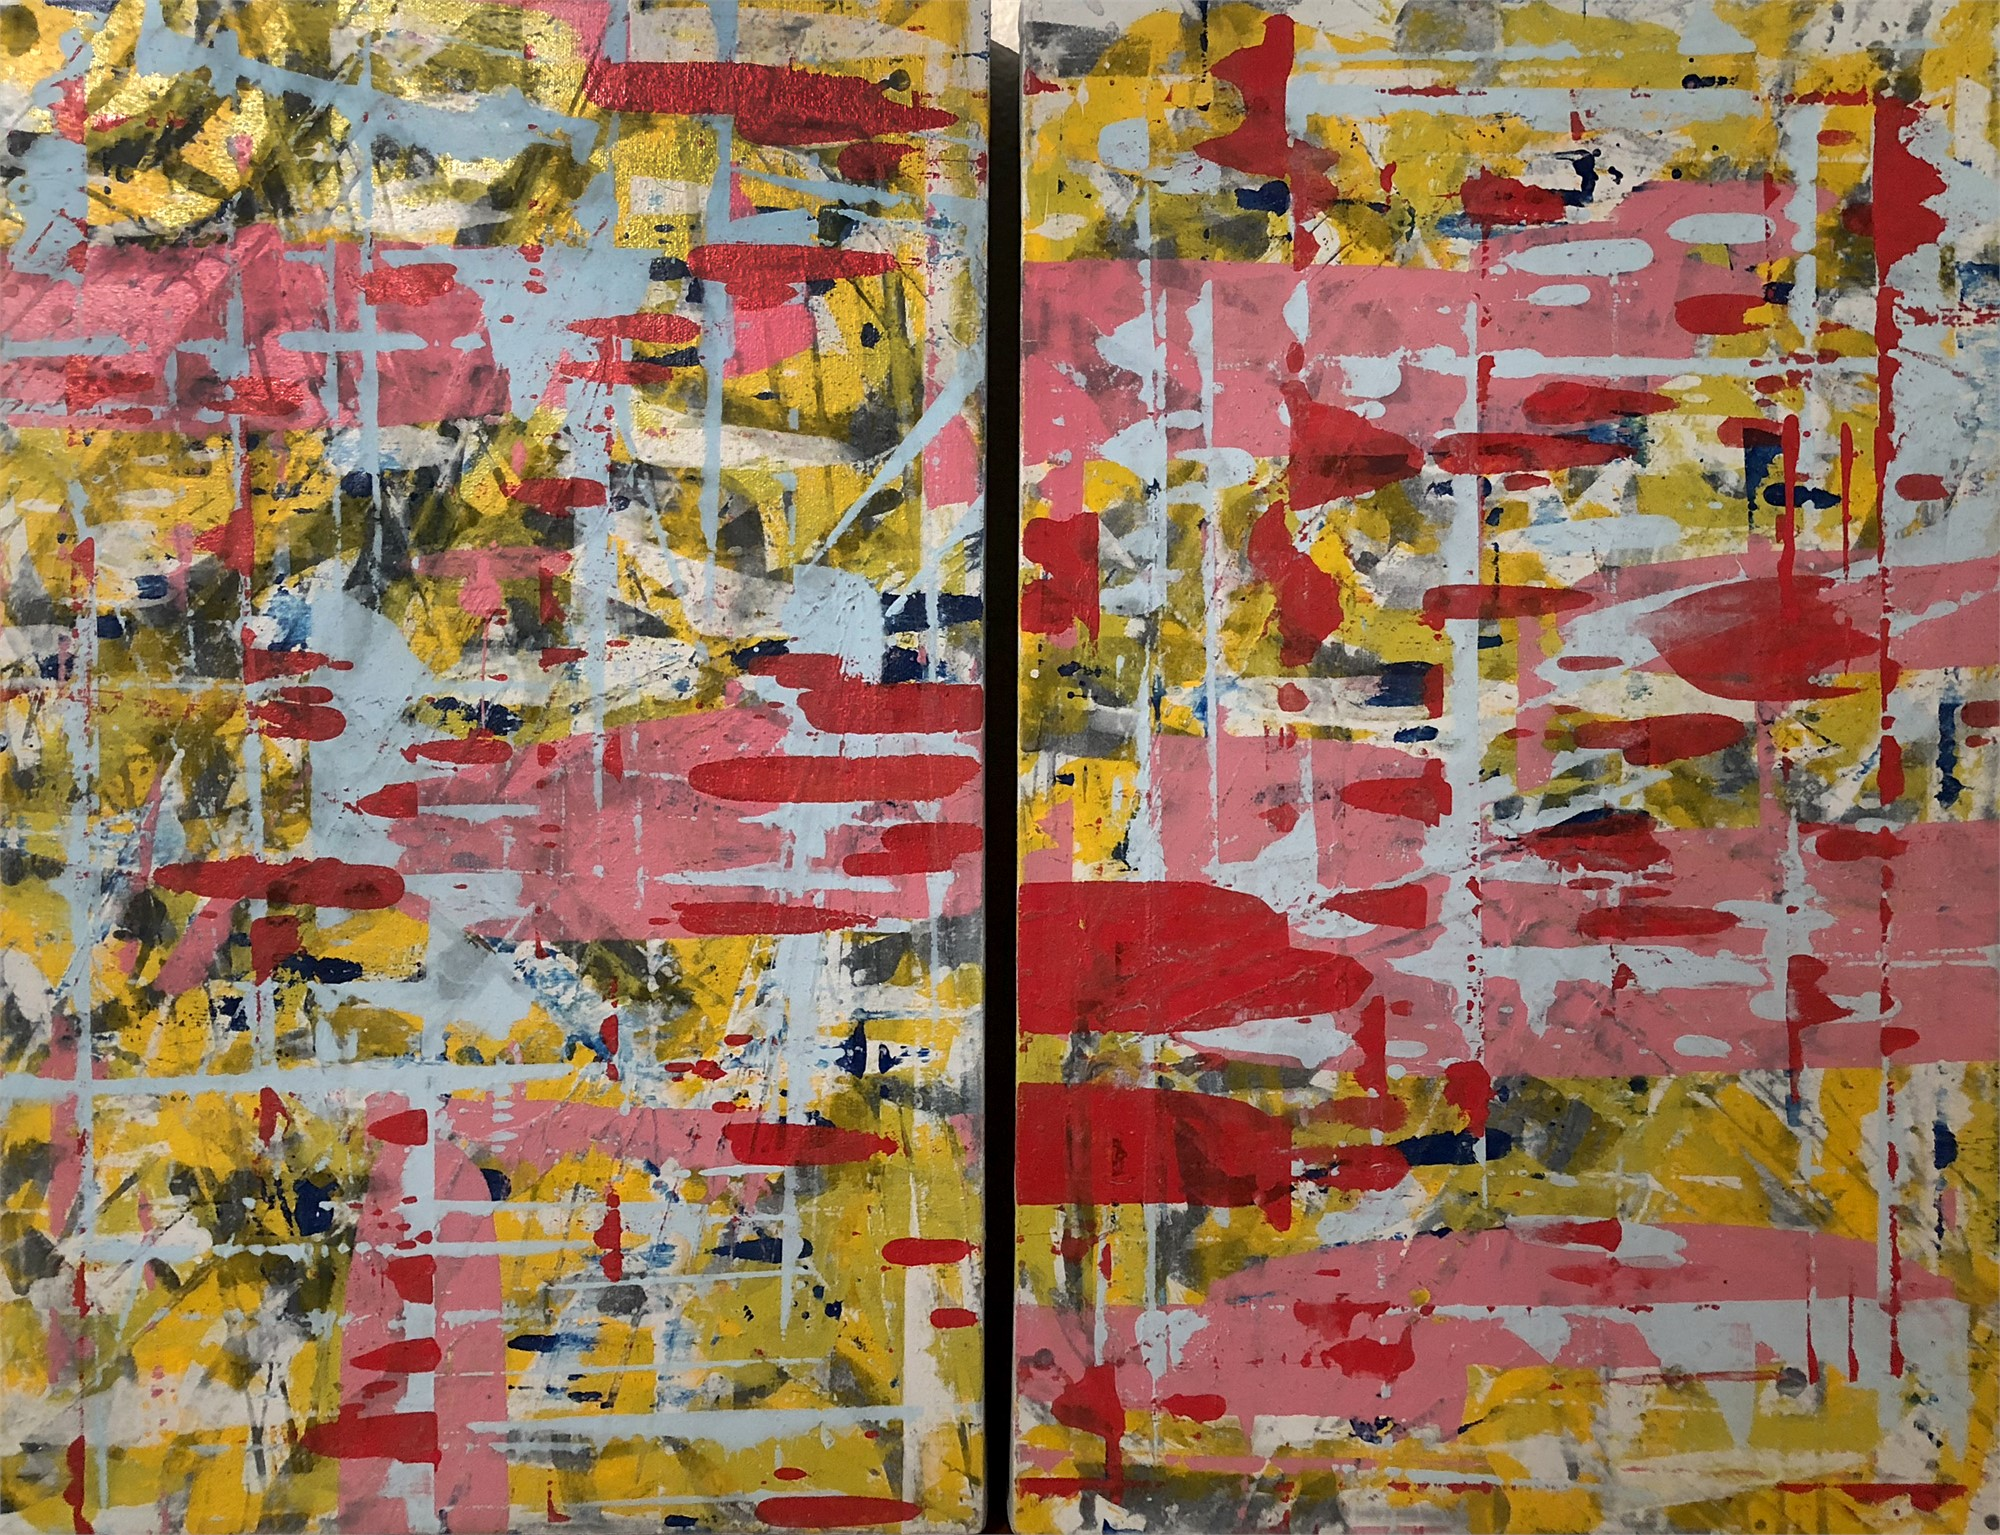 Untitled Diptych by Ibsen Espada